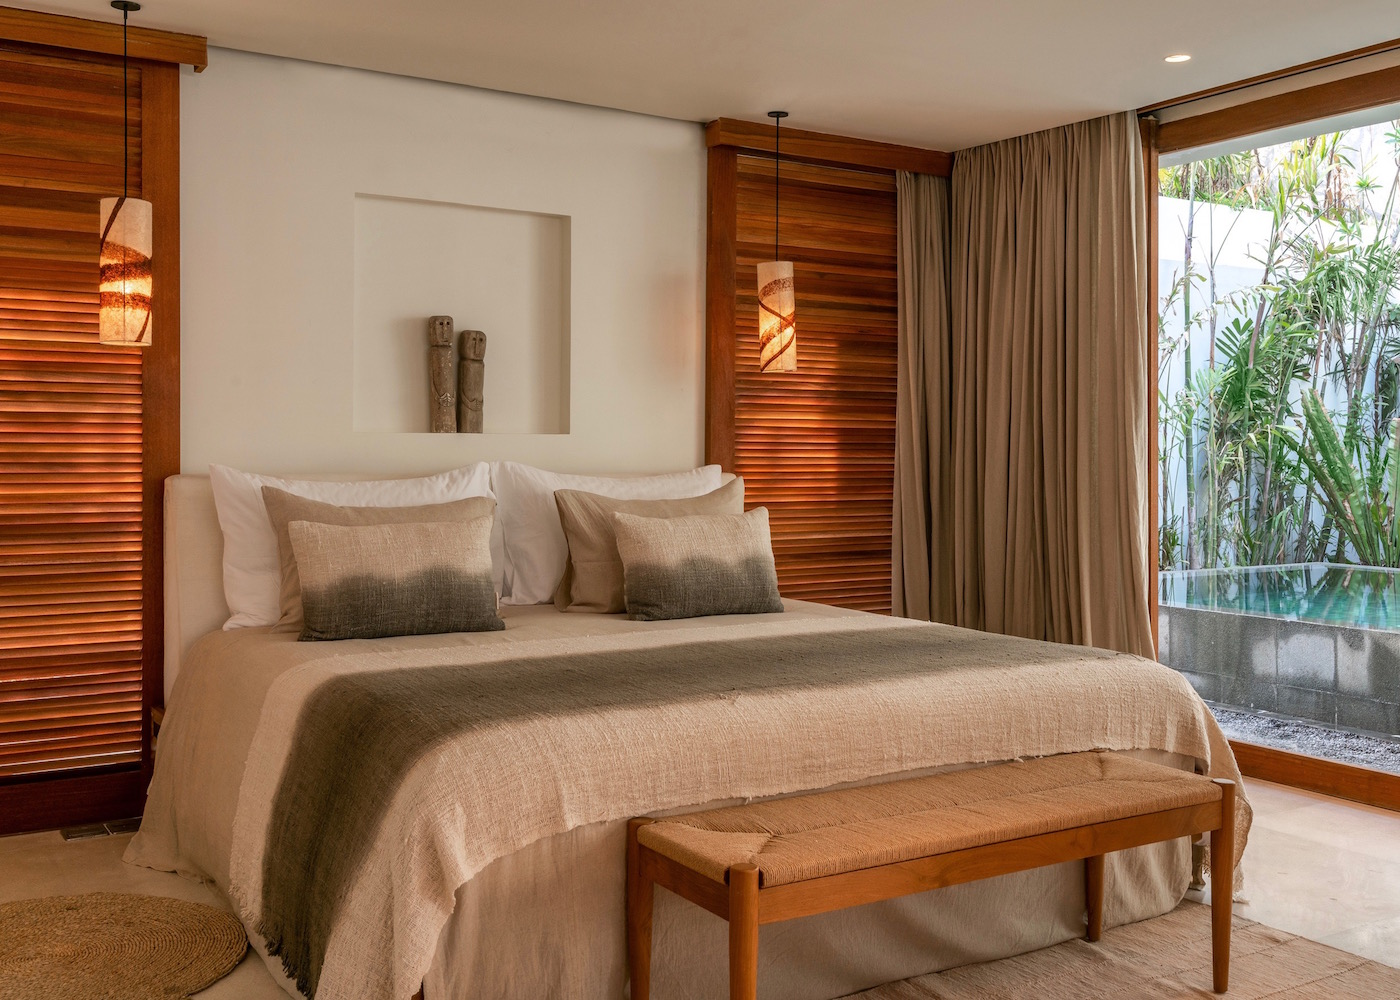 Sneak Peek: We checked out The Villas at Bisma Eight – luxury Balinese-inspired abodes that feel like home